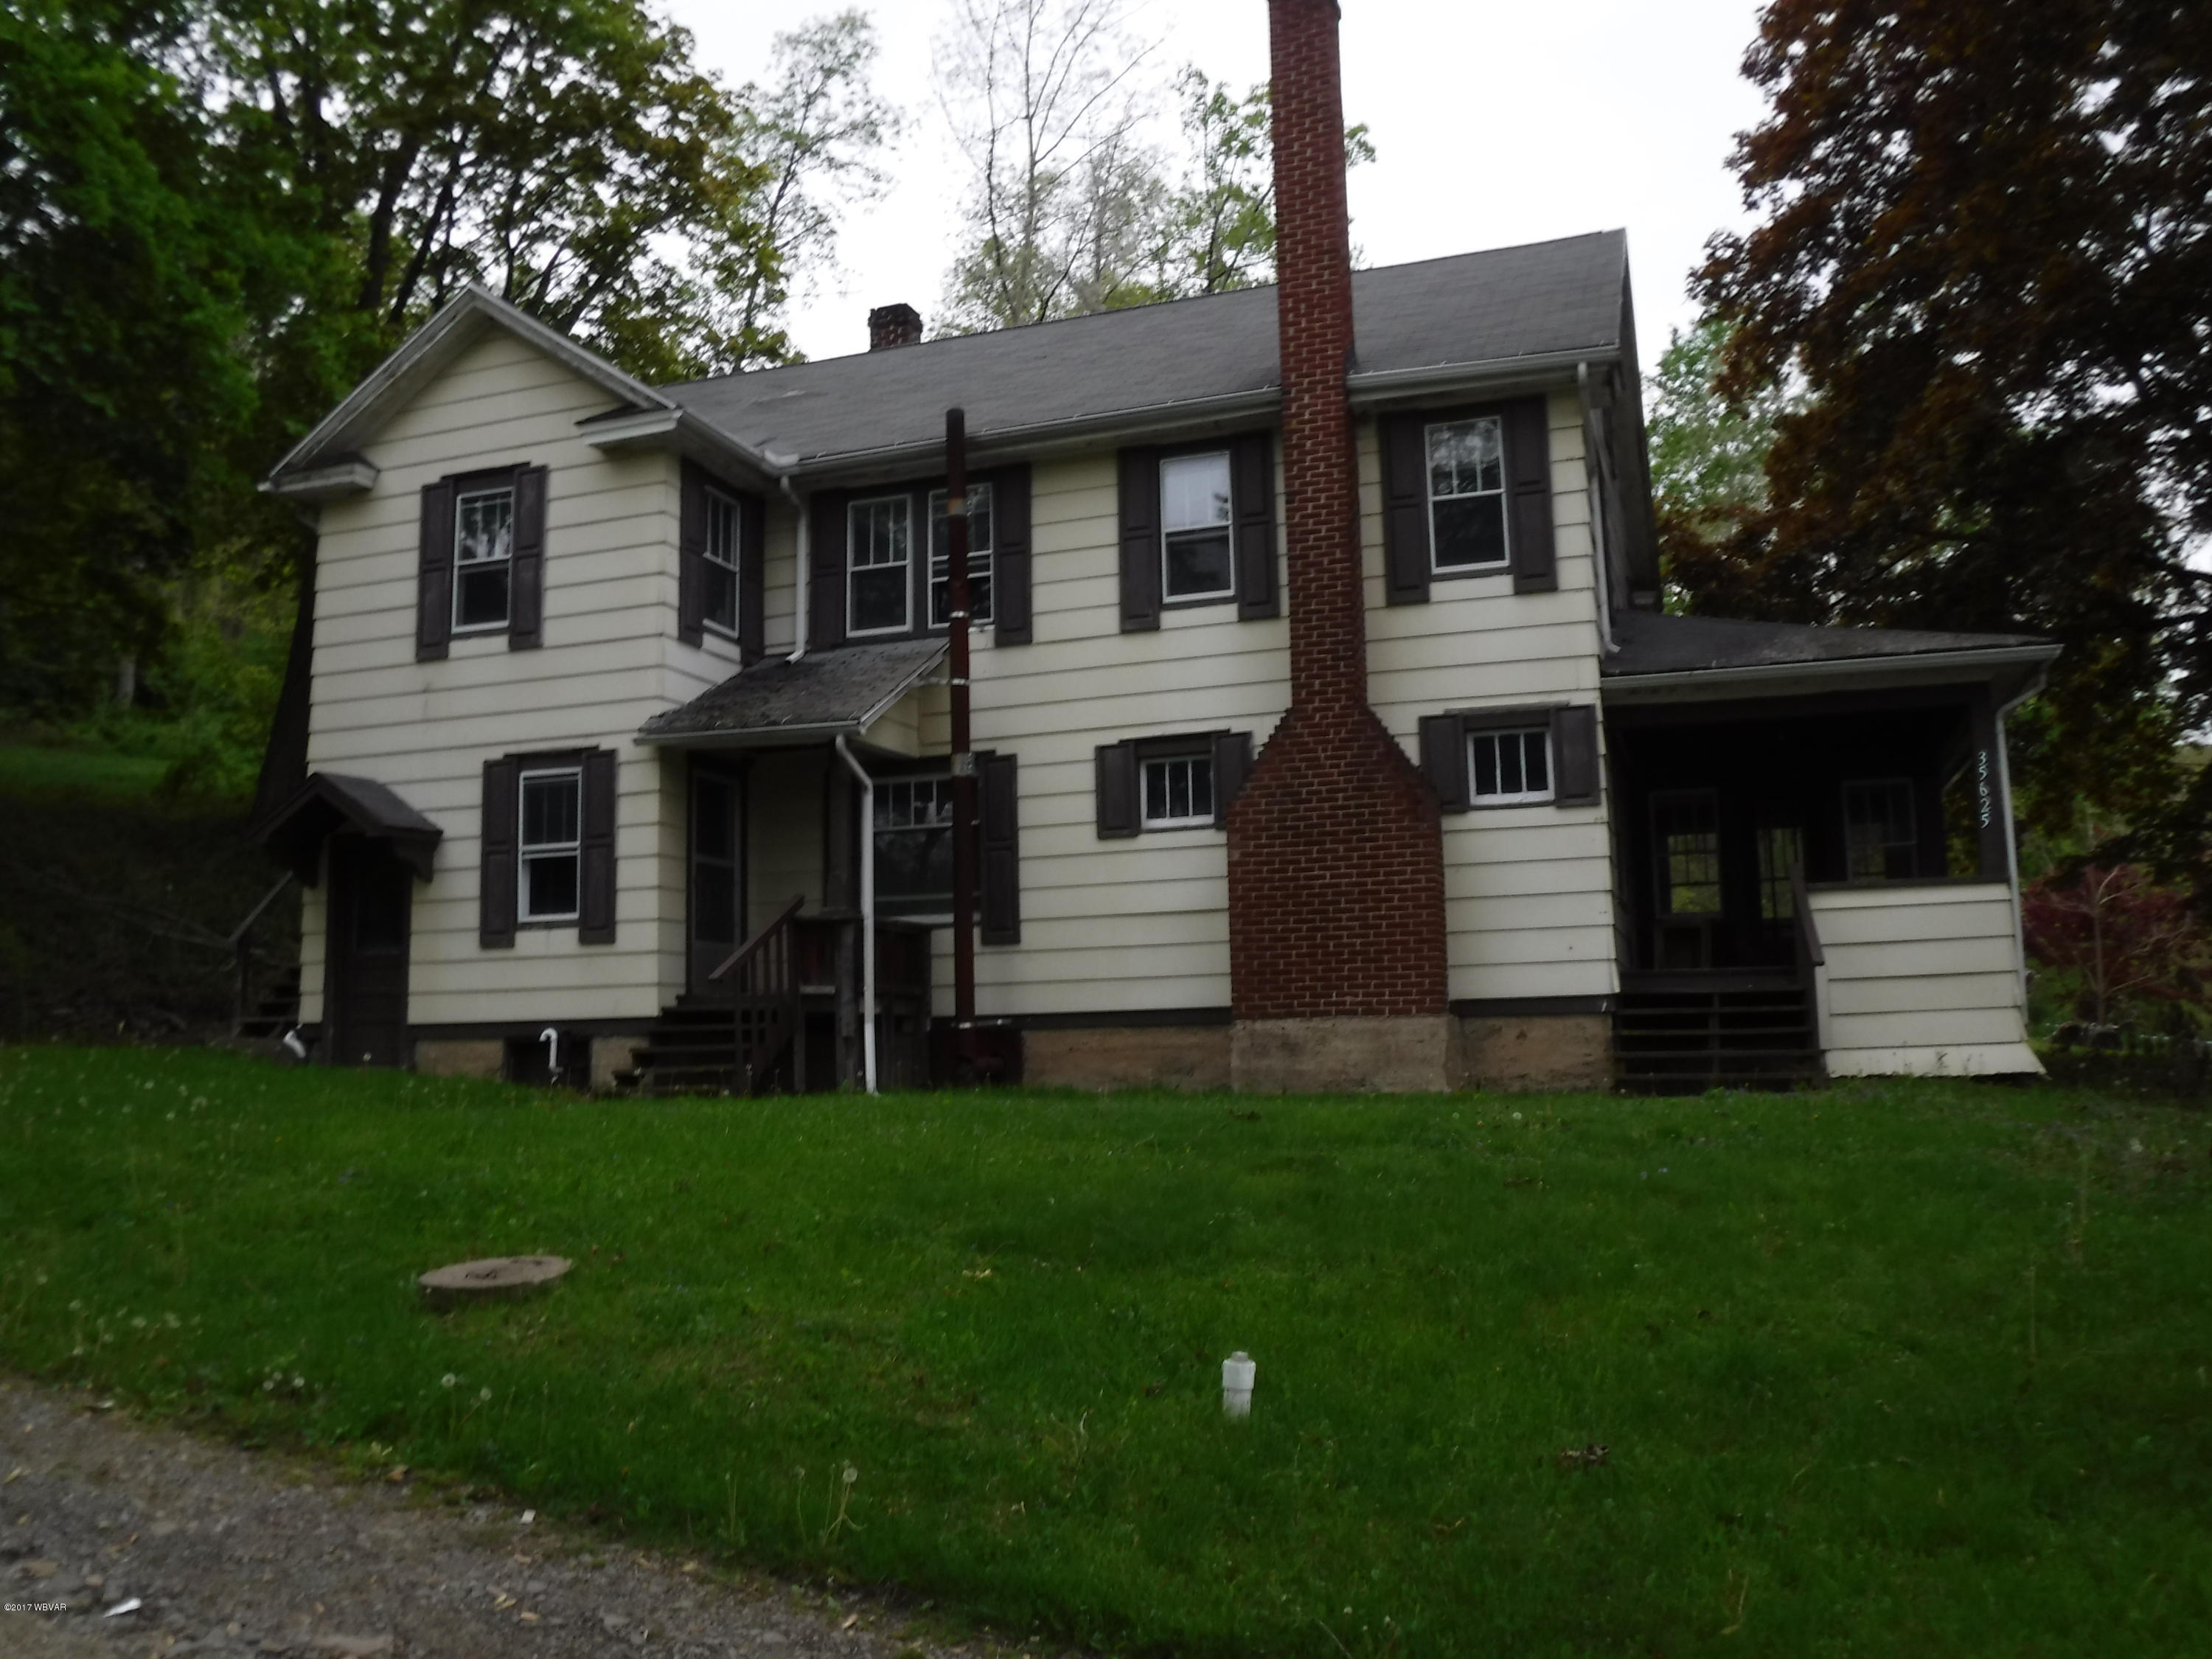 35625 ROUTE 6 HIGHWAY,Wyalusing,PA 18853,4 Bedrooms Bedrooms,1.5 BathroomsBathrooms,Residential,ROUTE 6,WB-80765